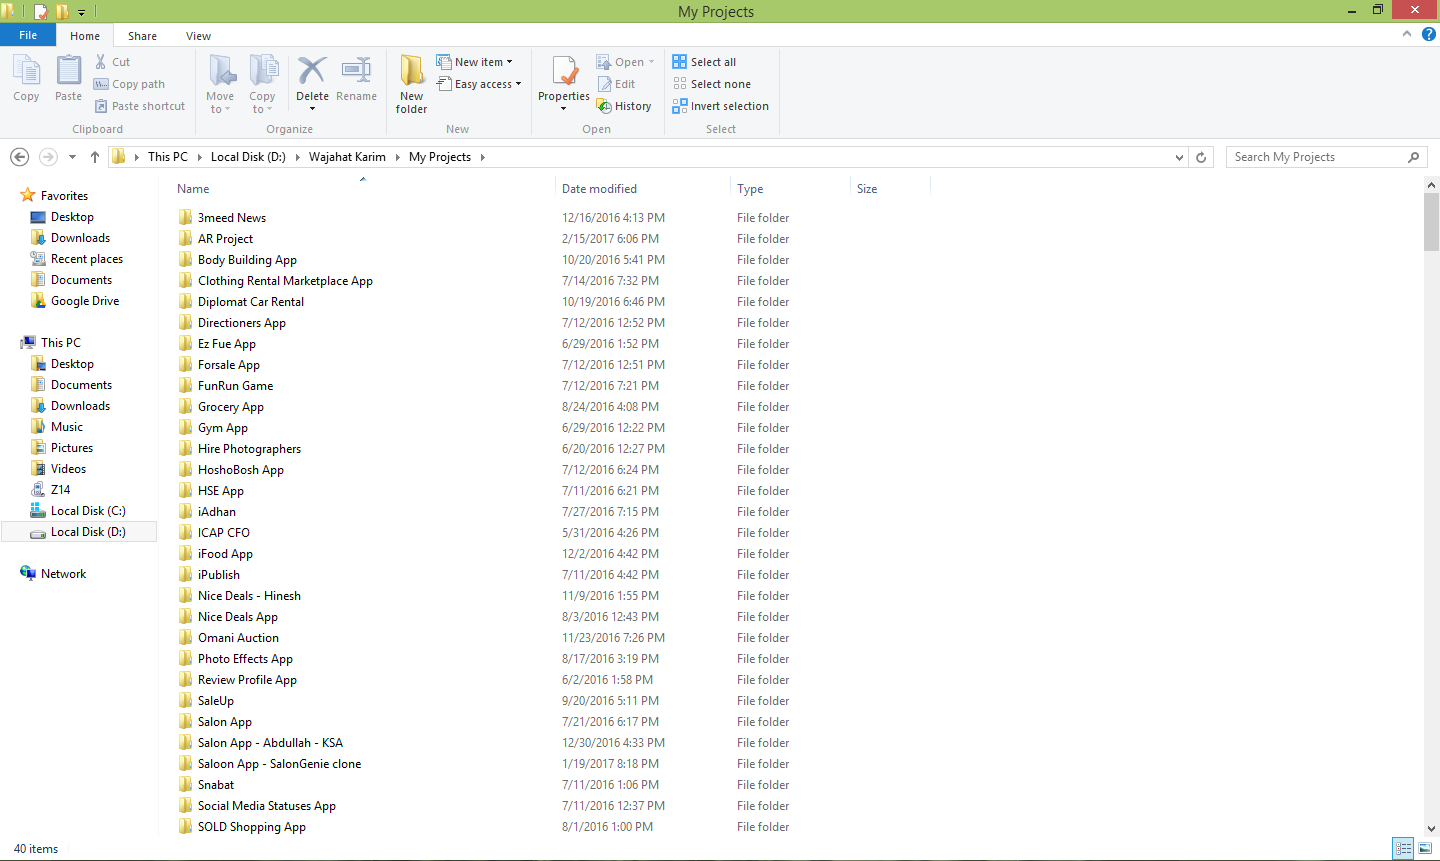 A Glimpse of 'My Projects' Directory in My Laptop (look at the scrollbar size)